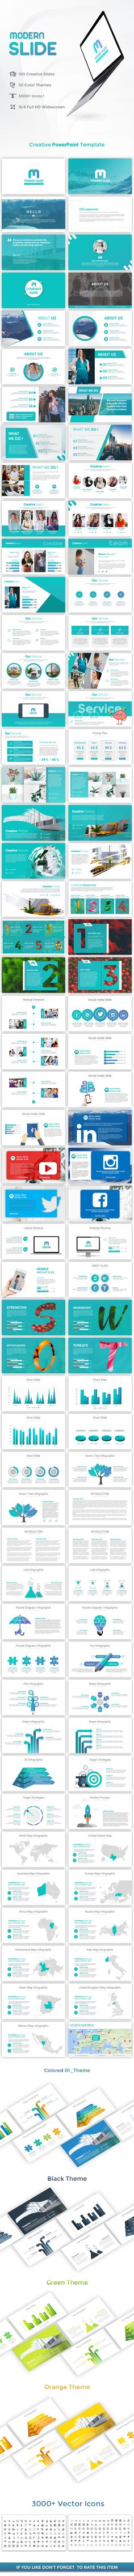 Modern Slide PowerPoint Presentation Template